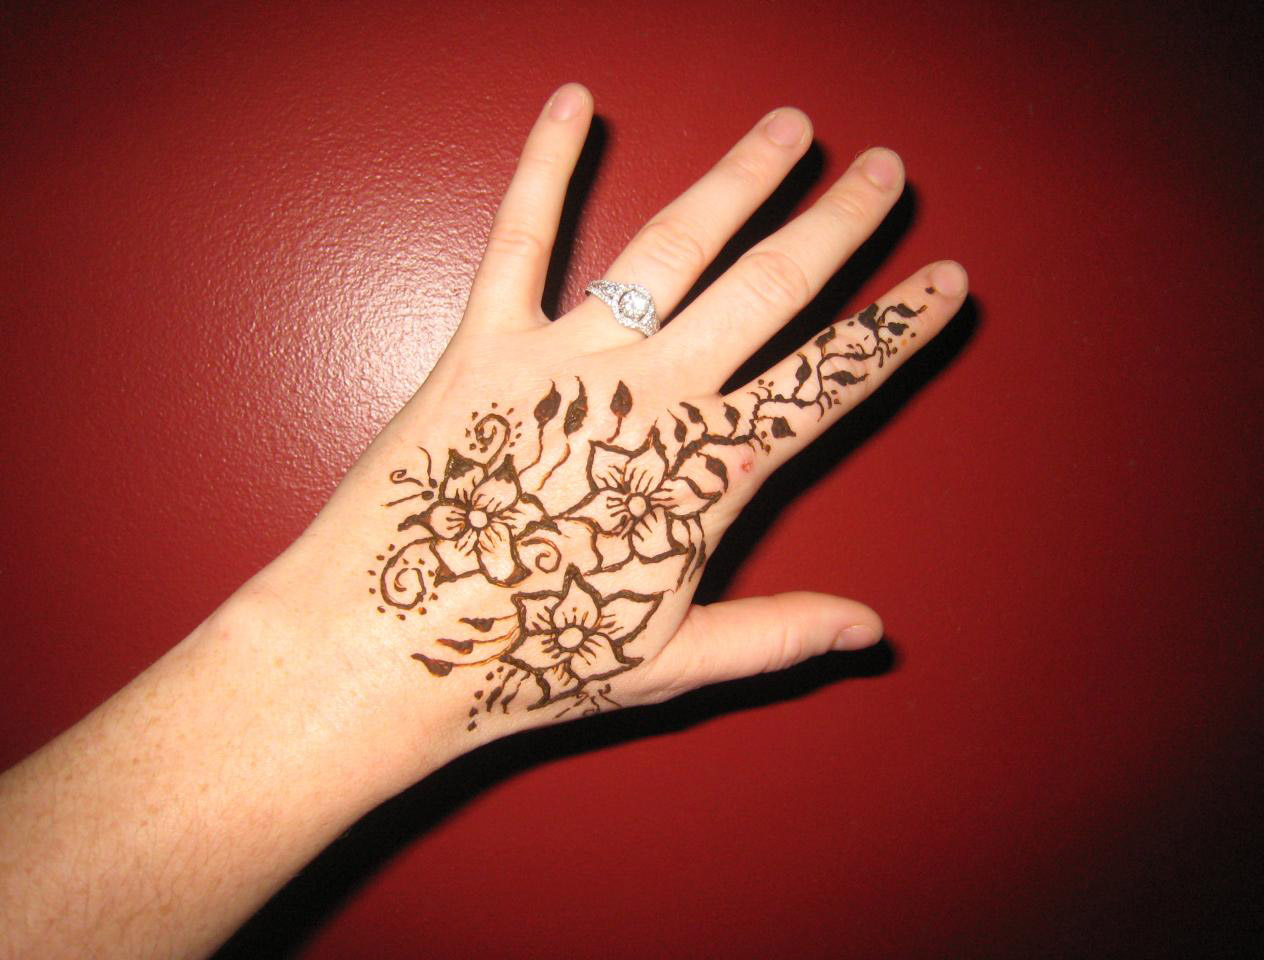 Henna Tattoo Designs3D Tattoos